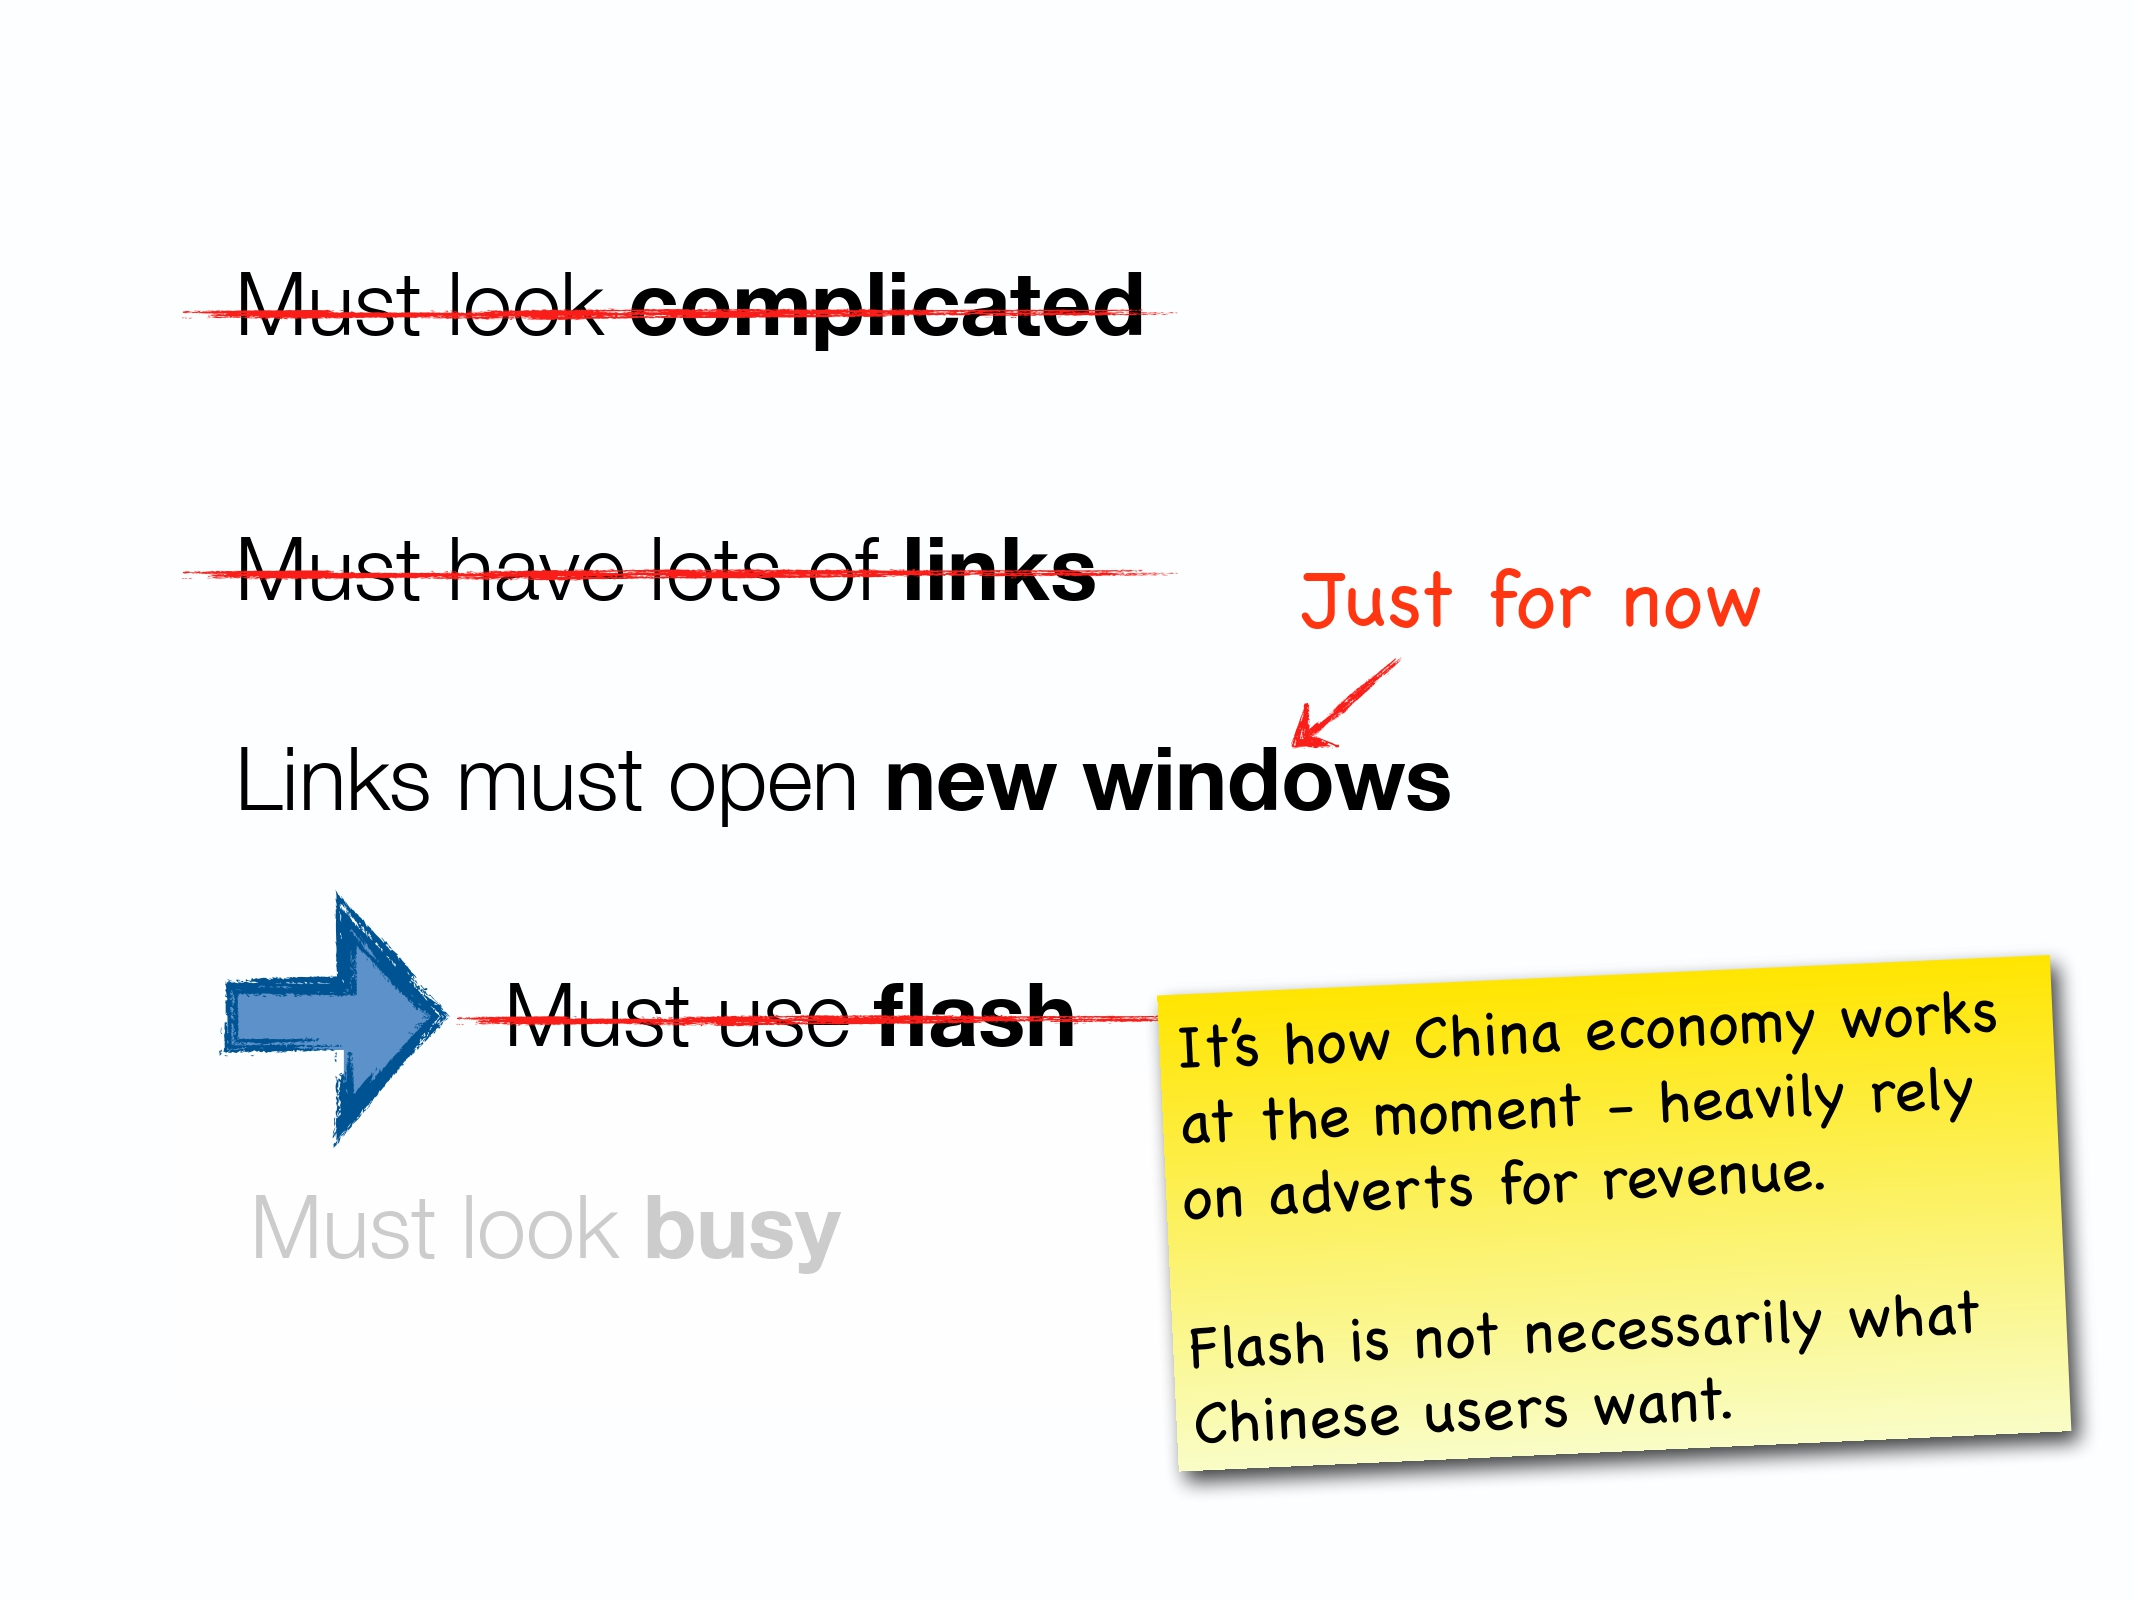 Chinese Web Design Patterns 2011_pages-to-jpg-0041.jpg